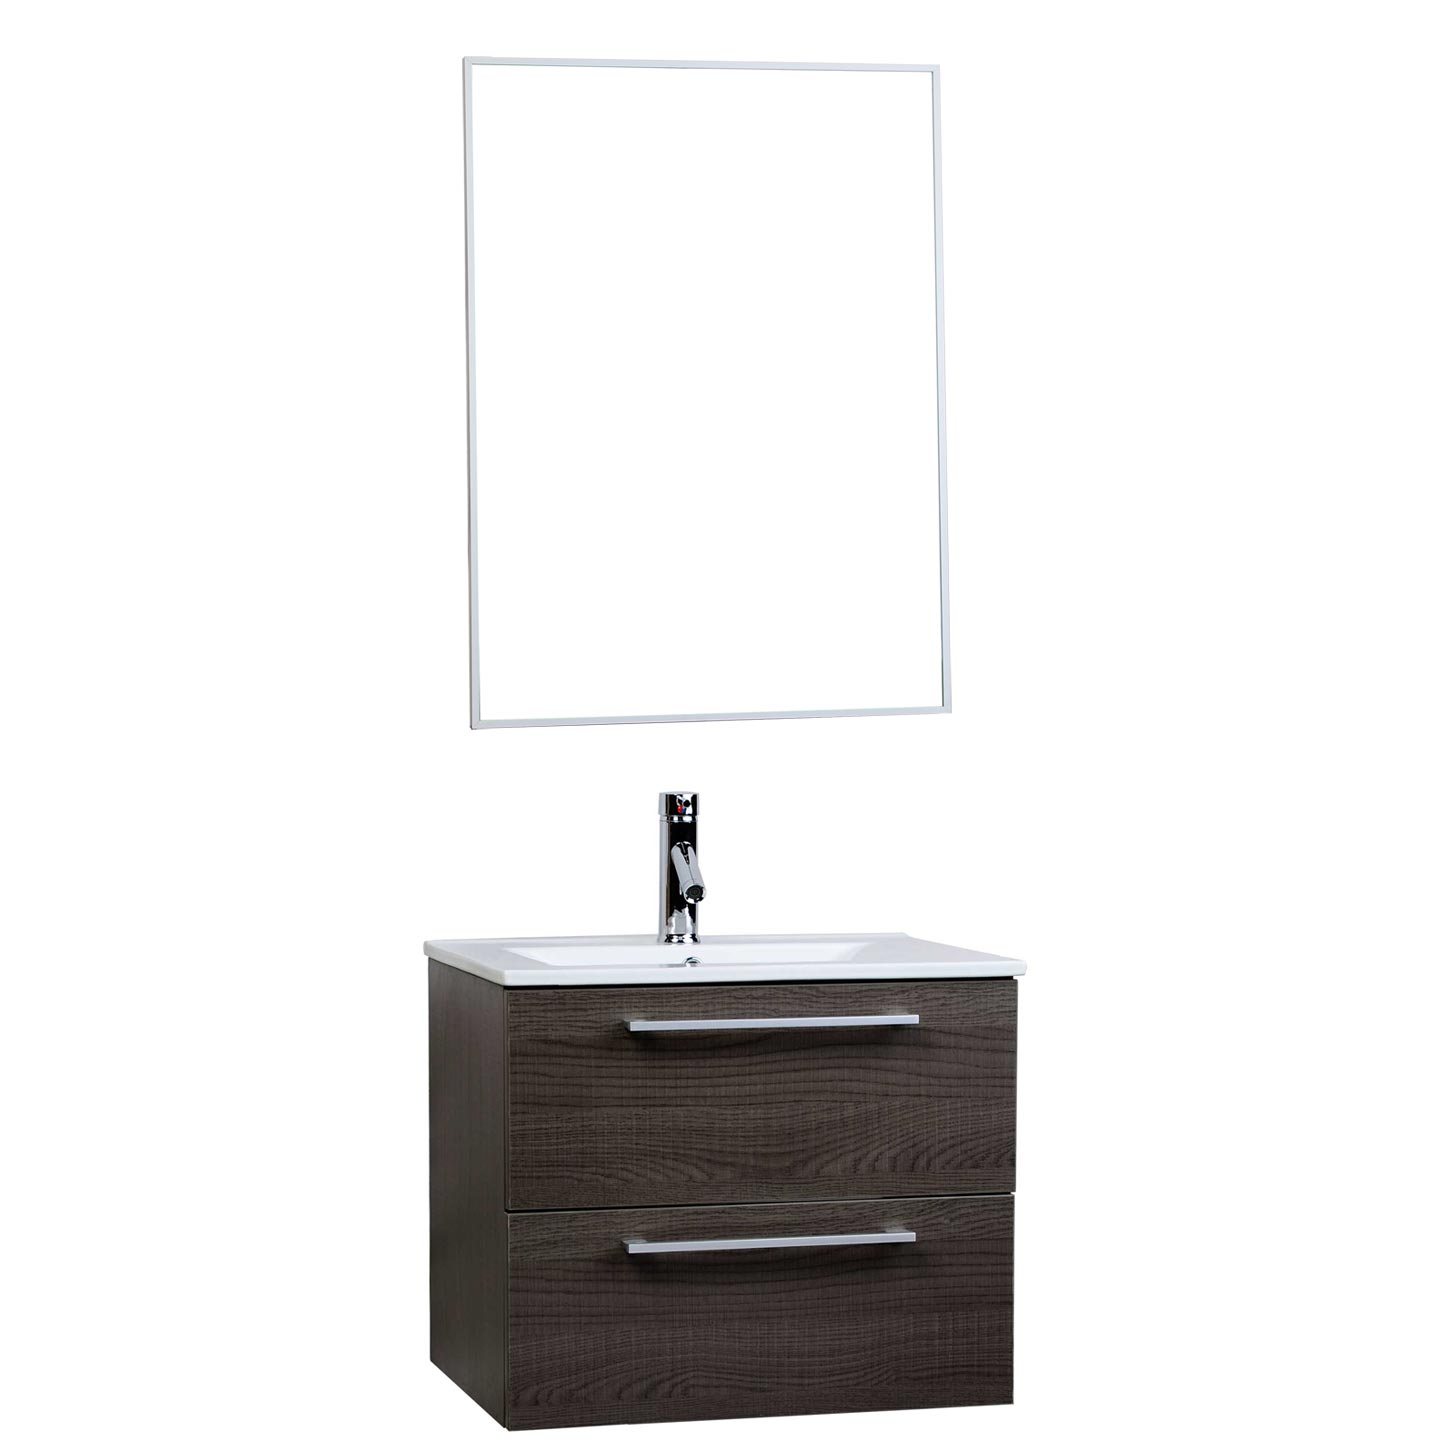 Buy Small Bathroom Vanities Less Than Inch On Conceptbathscom - Wall mount vanities for bathrooms